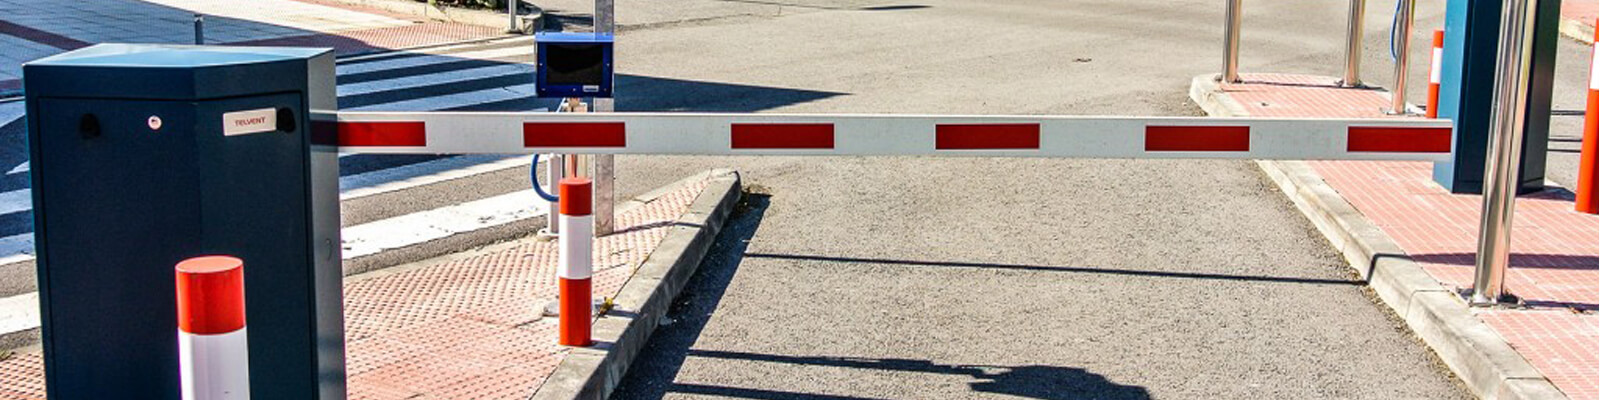 Boom Barriers | Sliding gate | Road blocks | Essa Tech Services